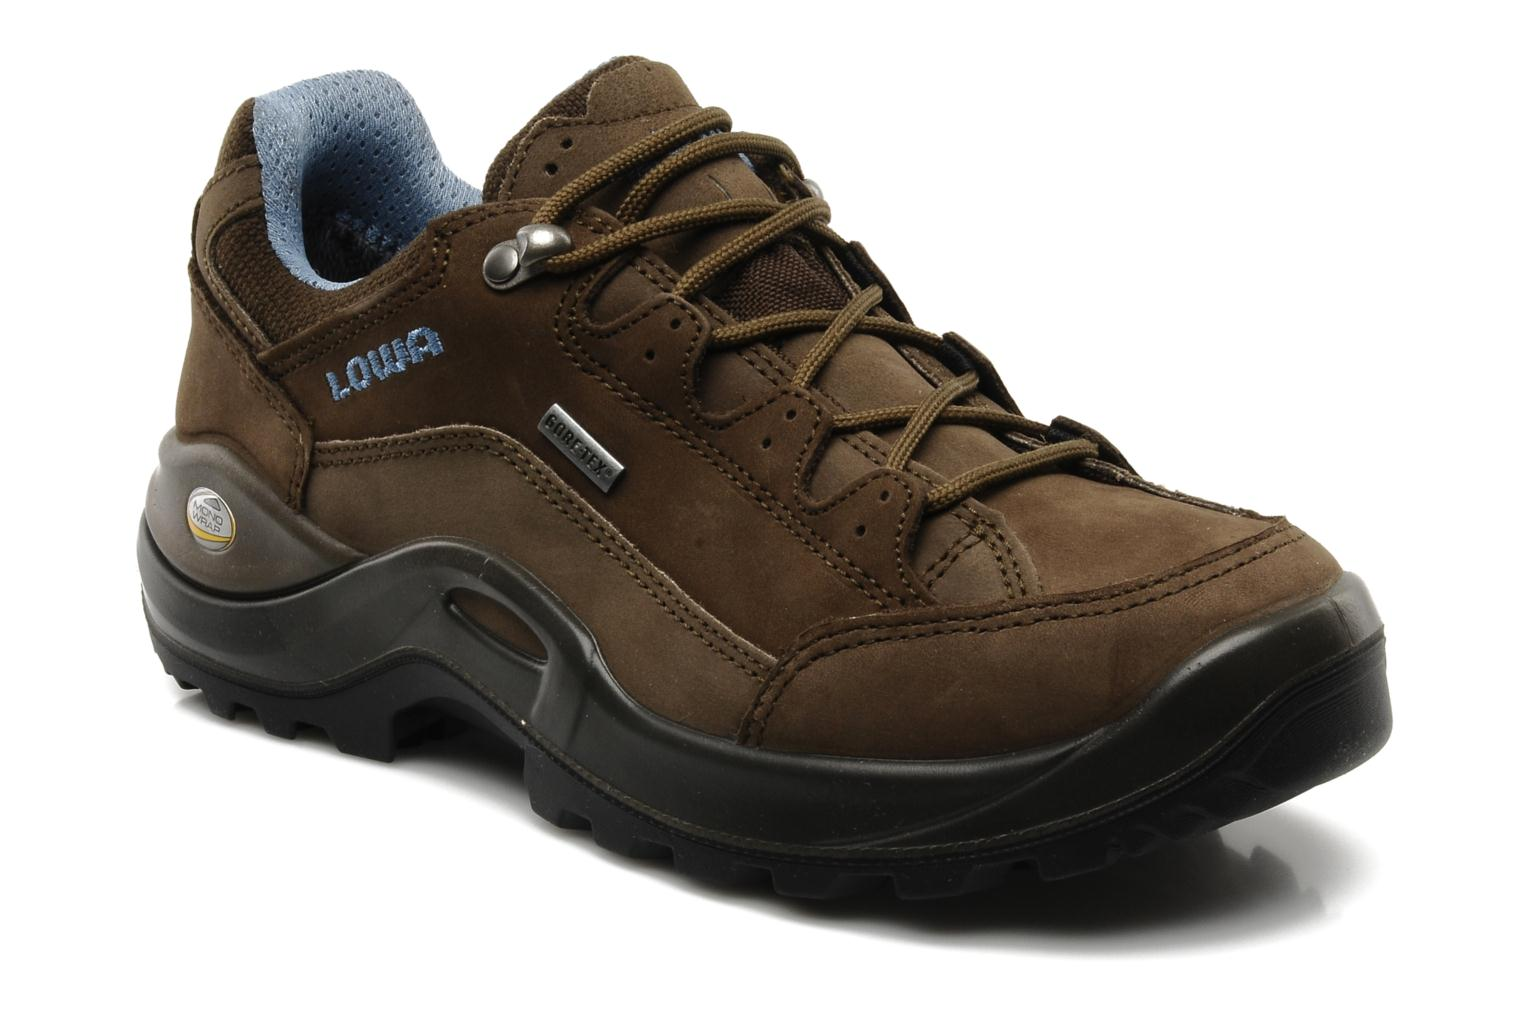 lowa renegade ii gtx lo w sport shoes in brown at sarenza. Black Bedroom Furniture Sets. Home Design Ideas